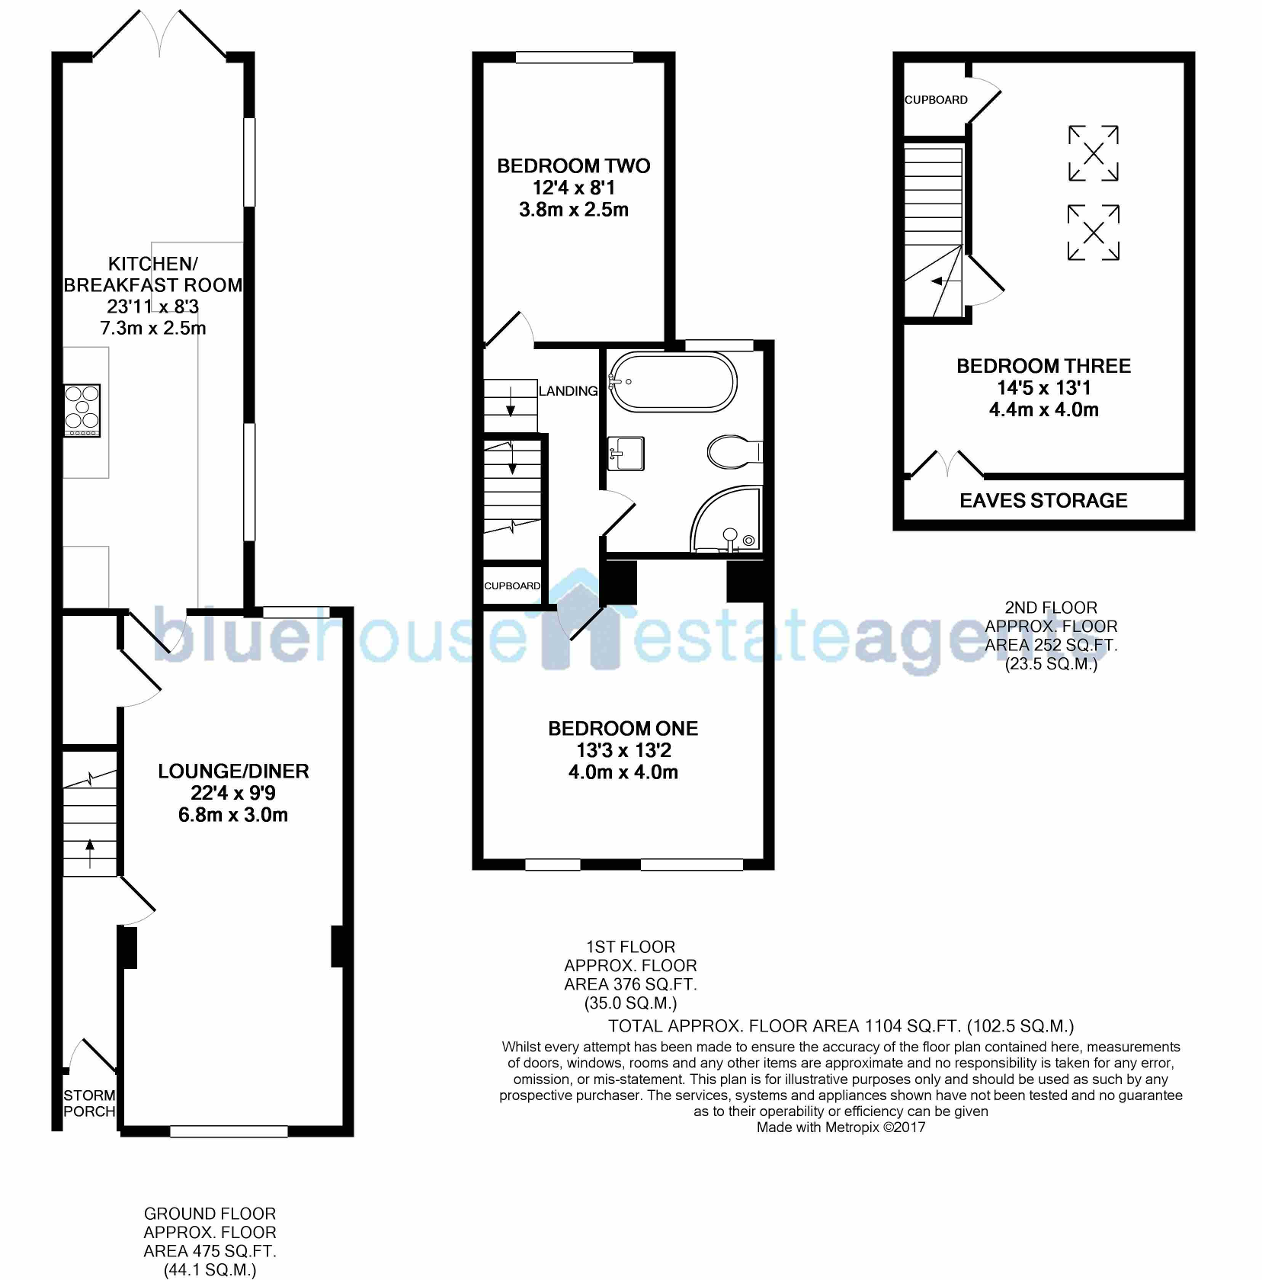 storage shed with attic with 42874617 on 24 Foot Truss Dimensions together with Garage And Shop Plans further 45465437 additionally Sloped Roof Plans additionally 42986449.